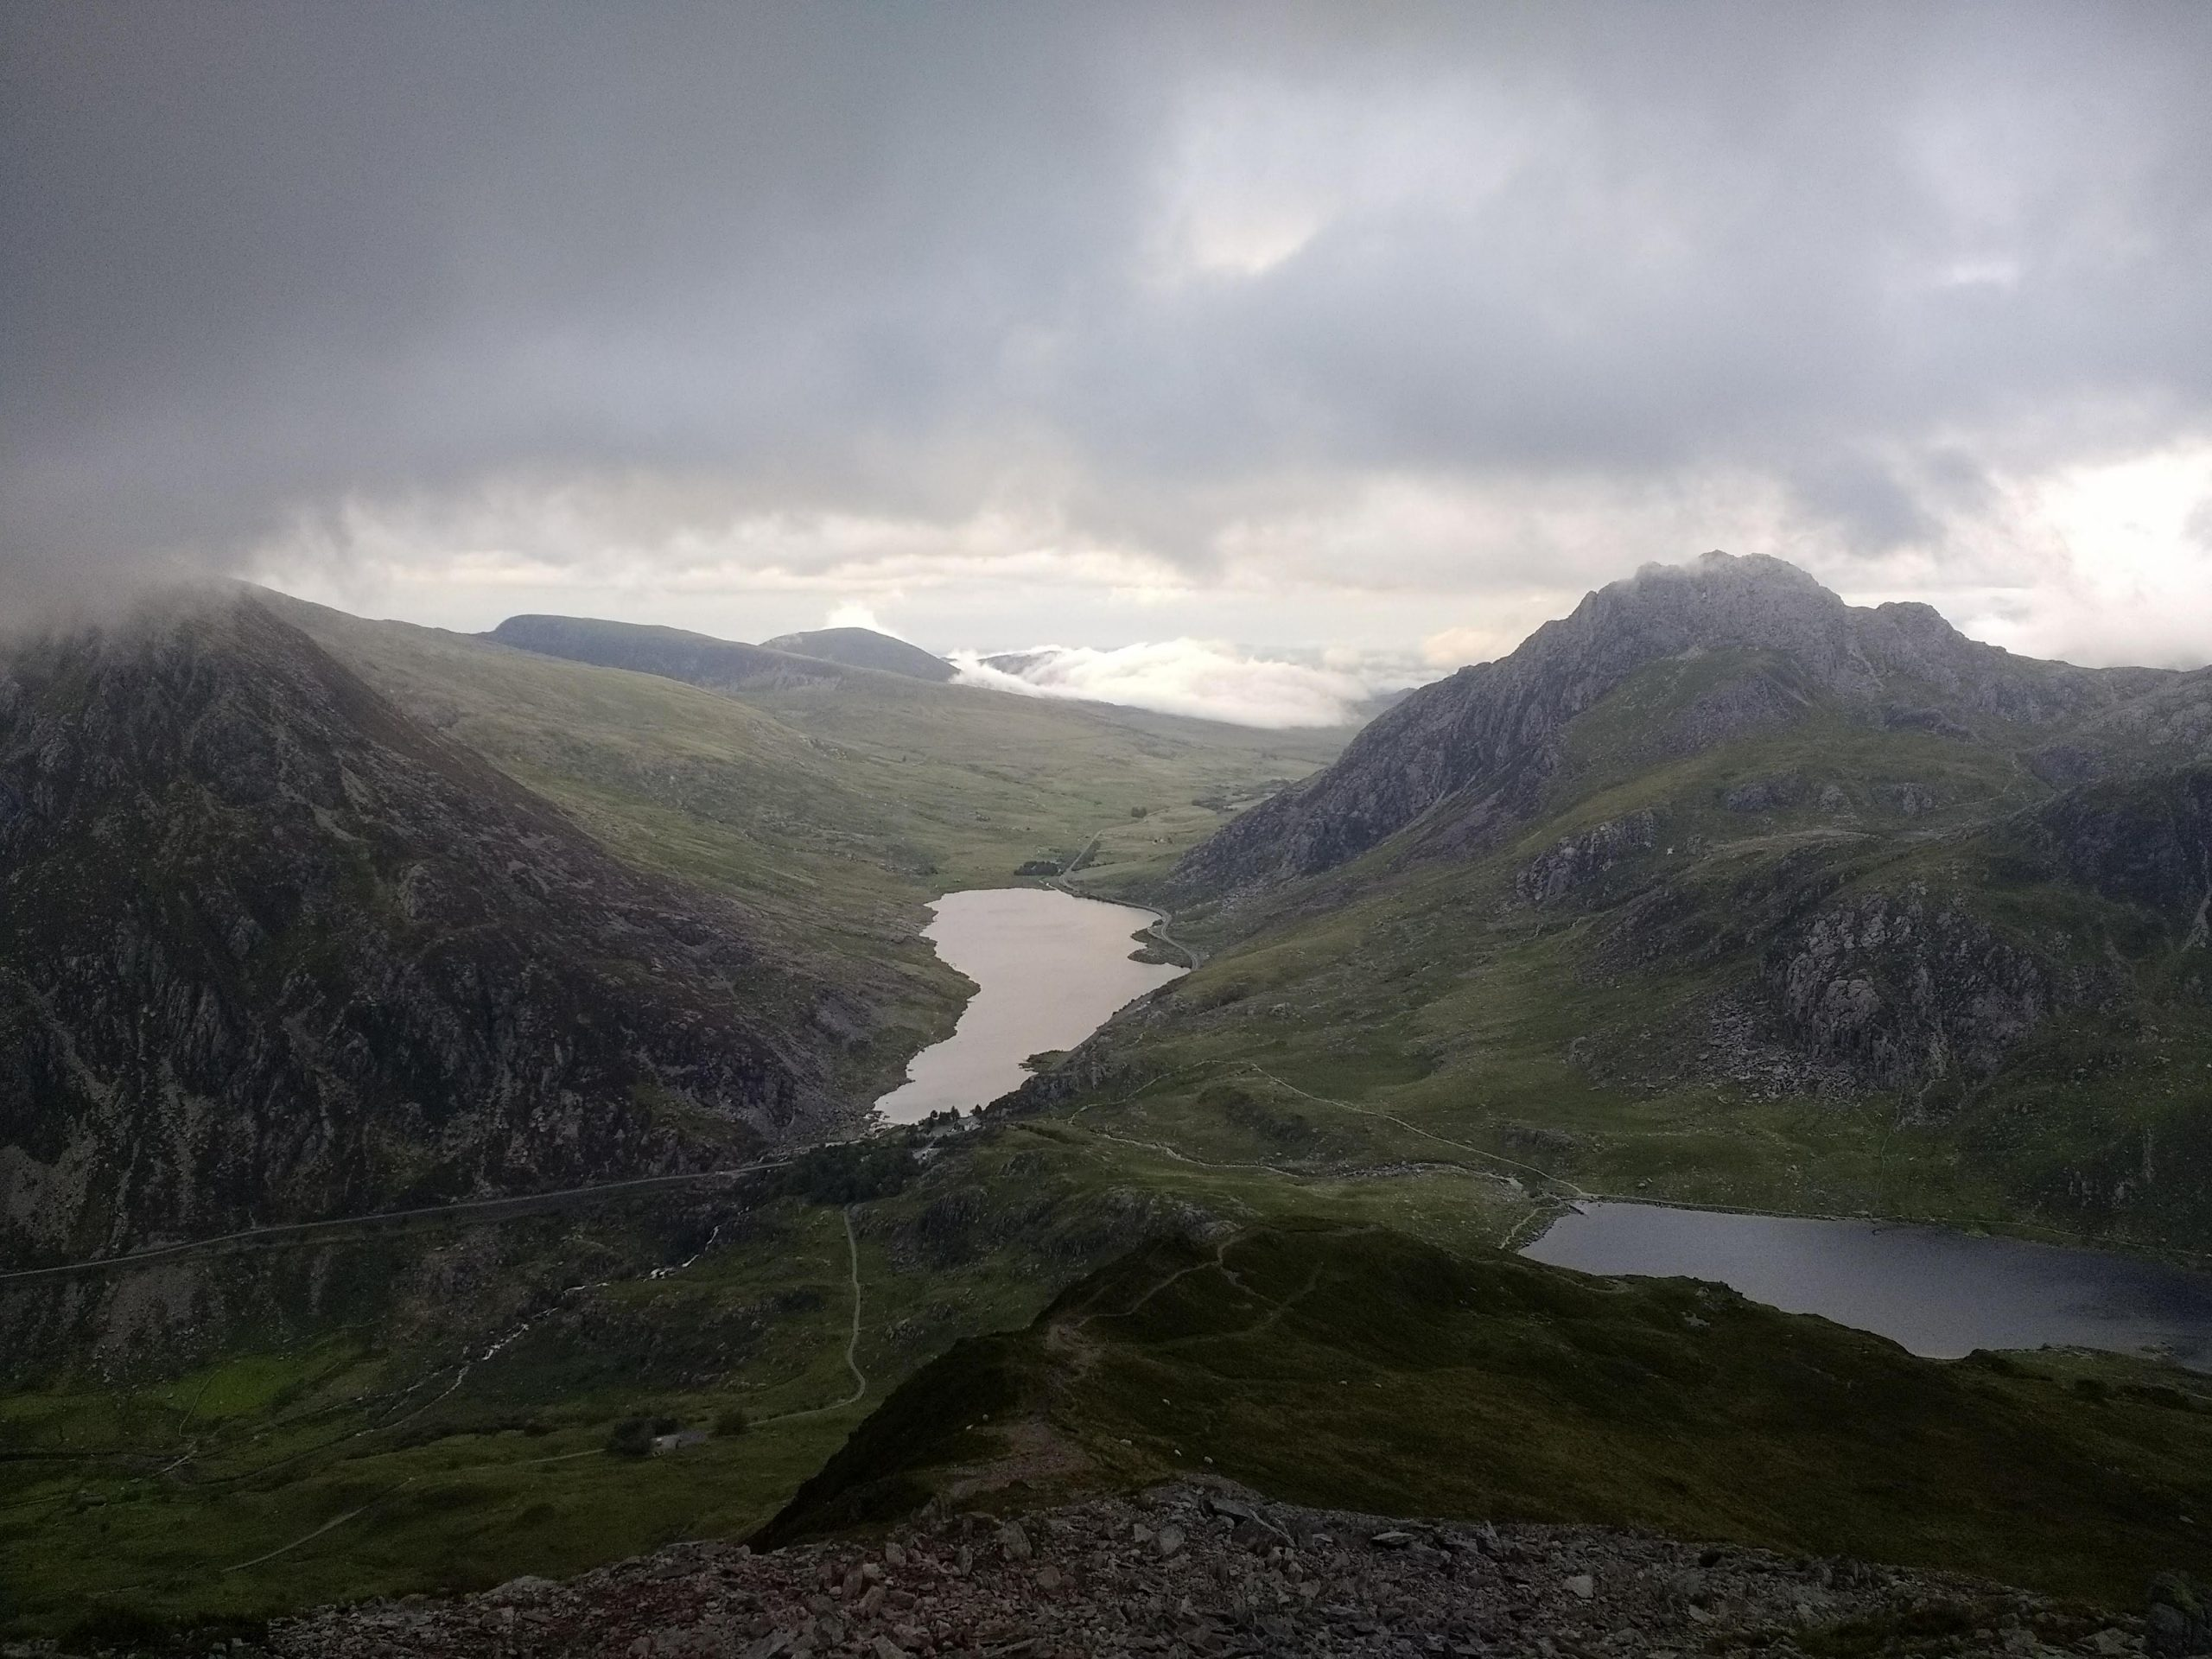 The Glyderau Range to the right with the Carneddau to the left